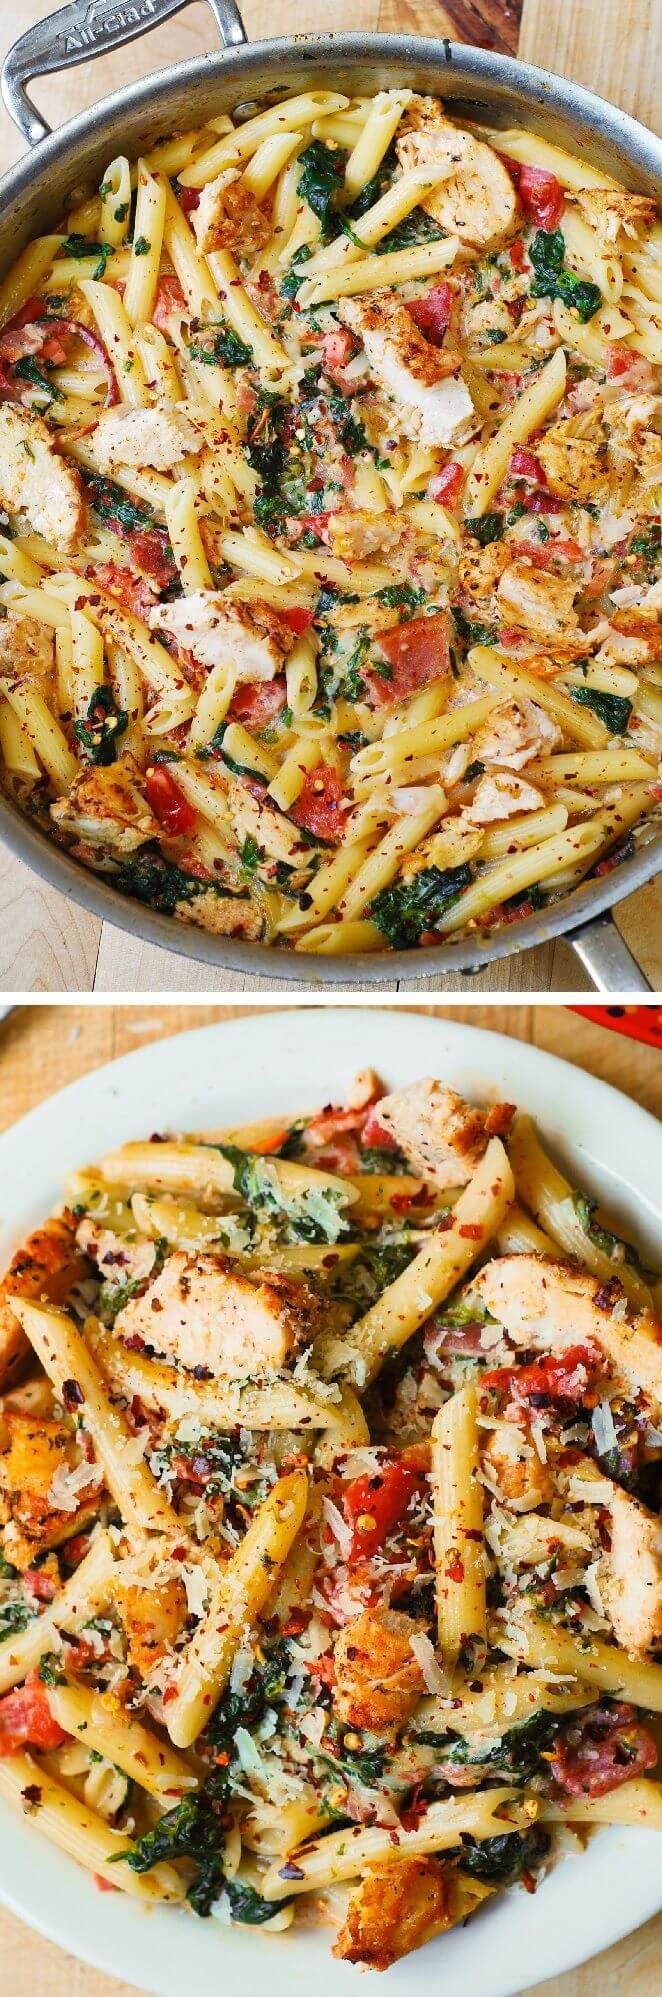 Best 25 Healthy cheap meals ideas only on Pinterest Cheap